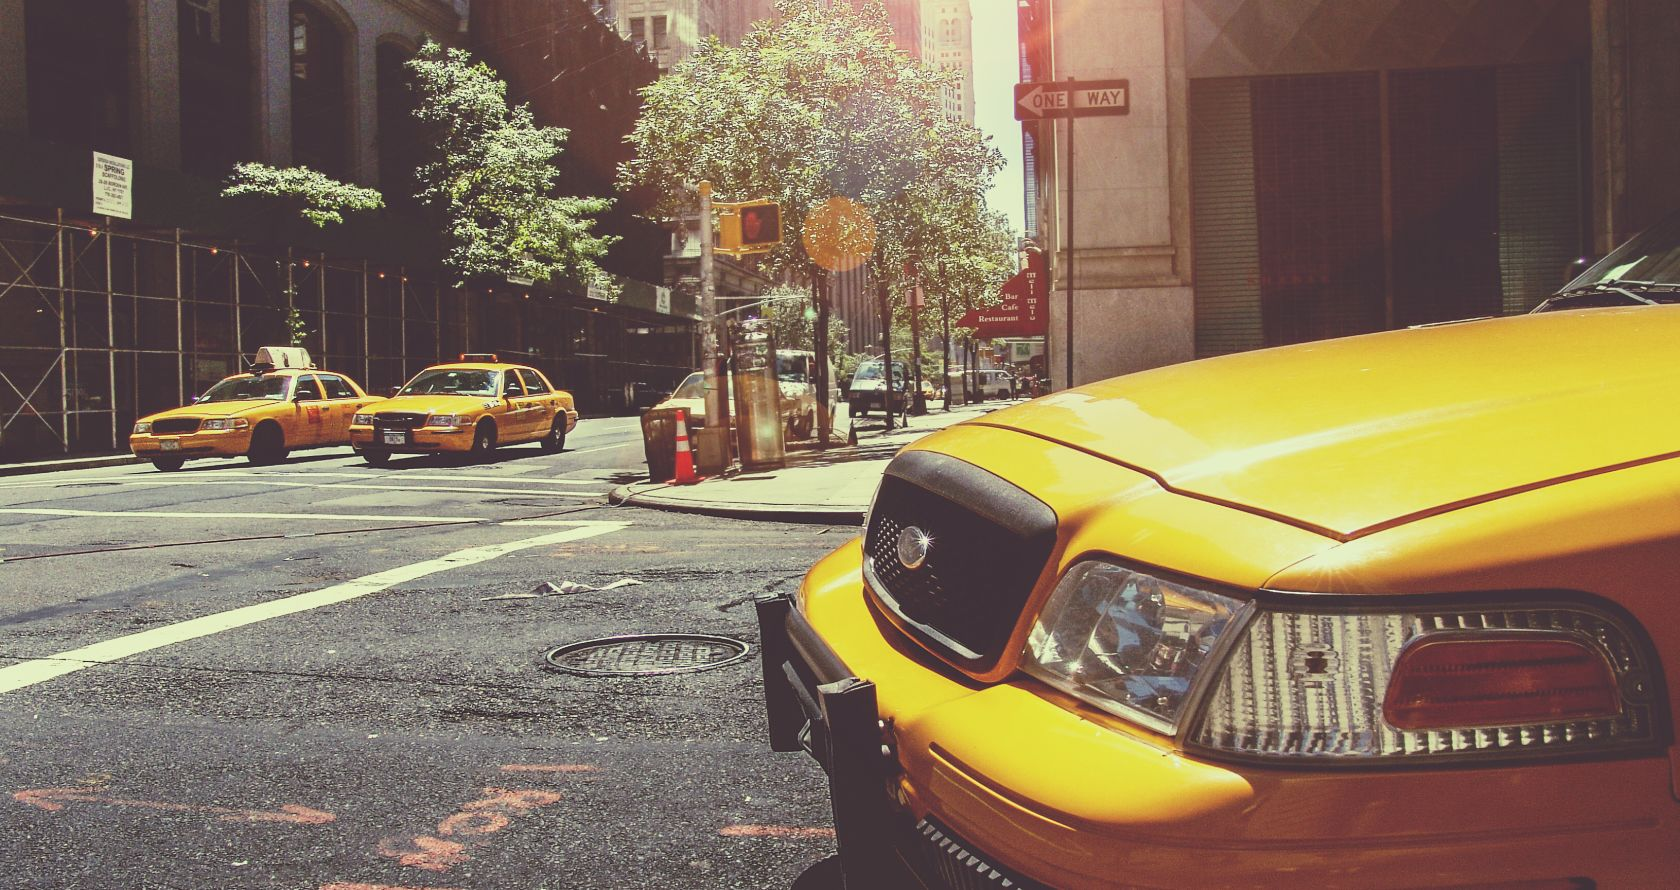 nyc street with taxis